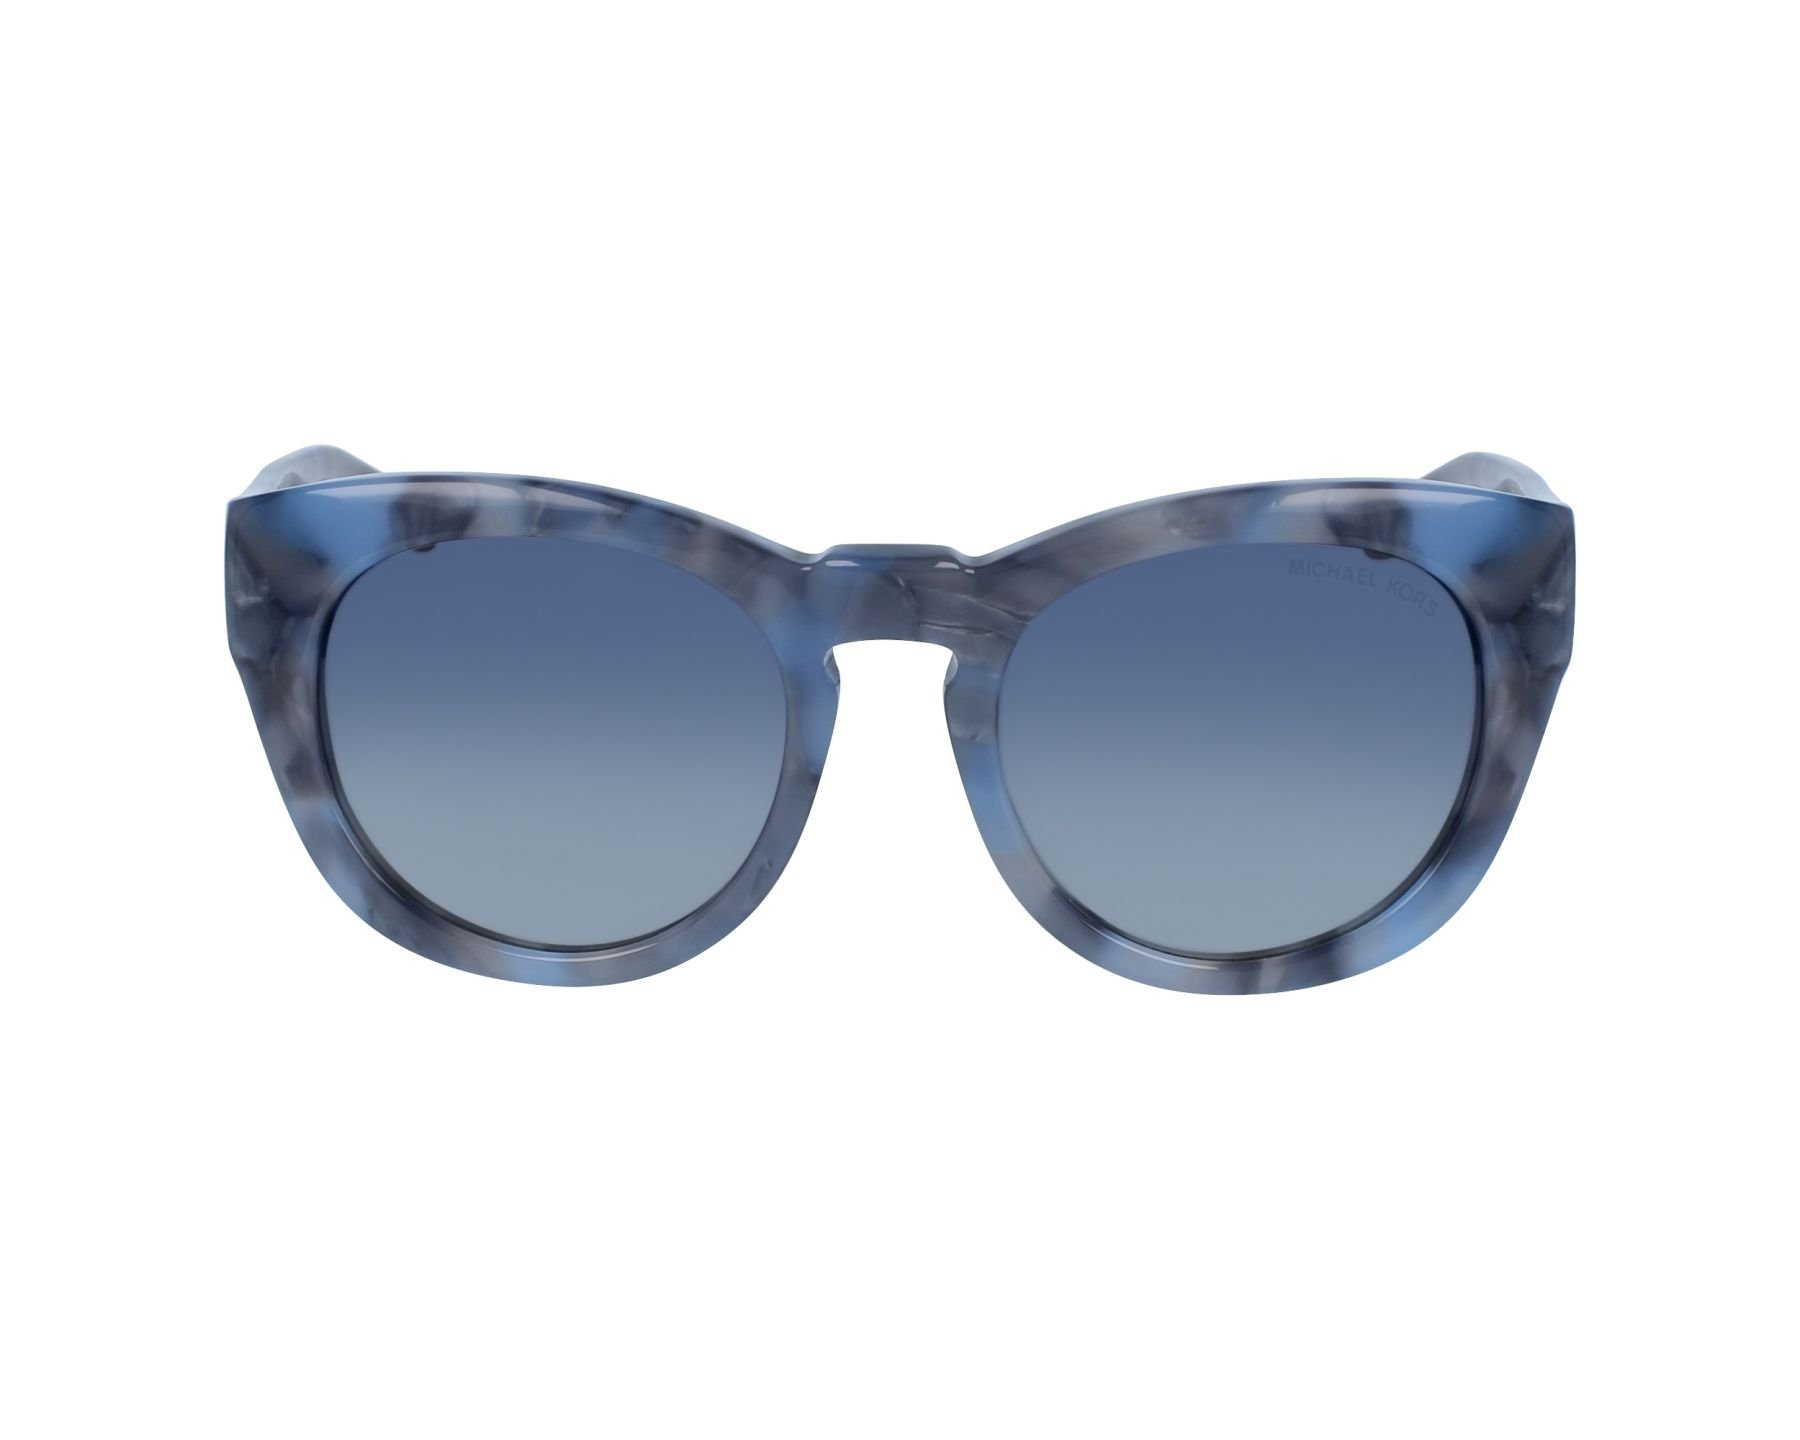 Michael Kors MK2037 32094L Blue Marble Summer Breeze Round Sunglasses Lens Cate